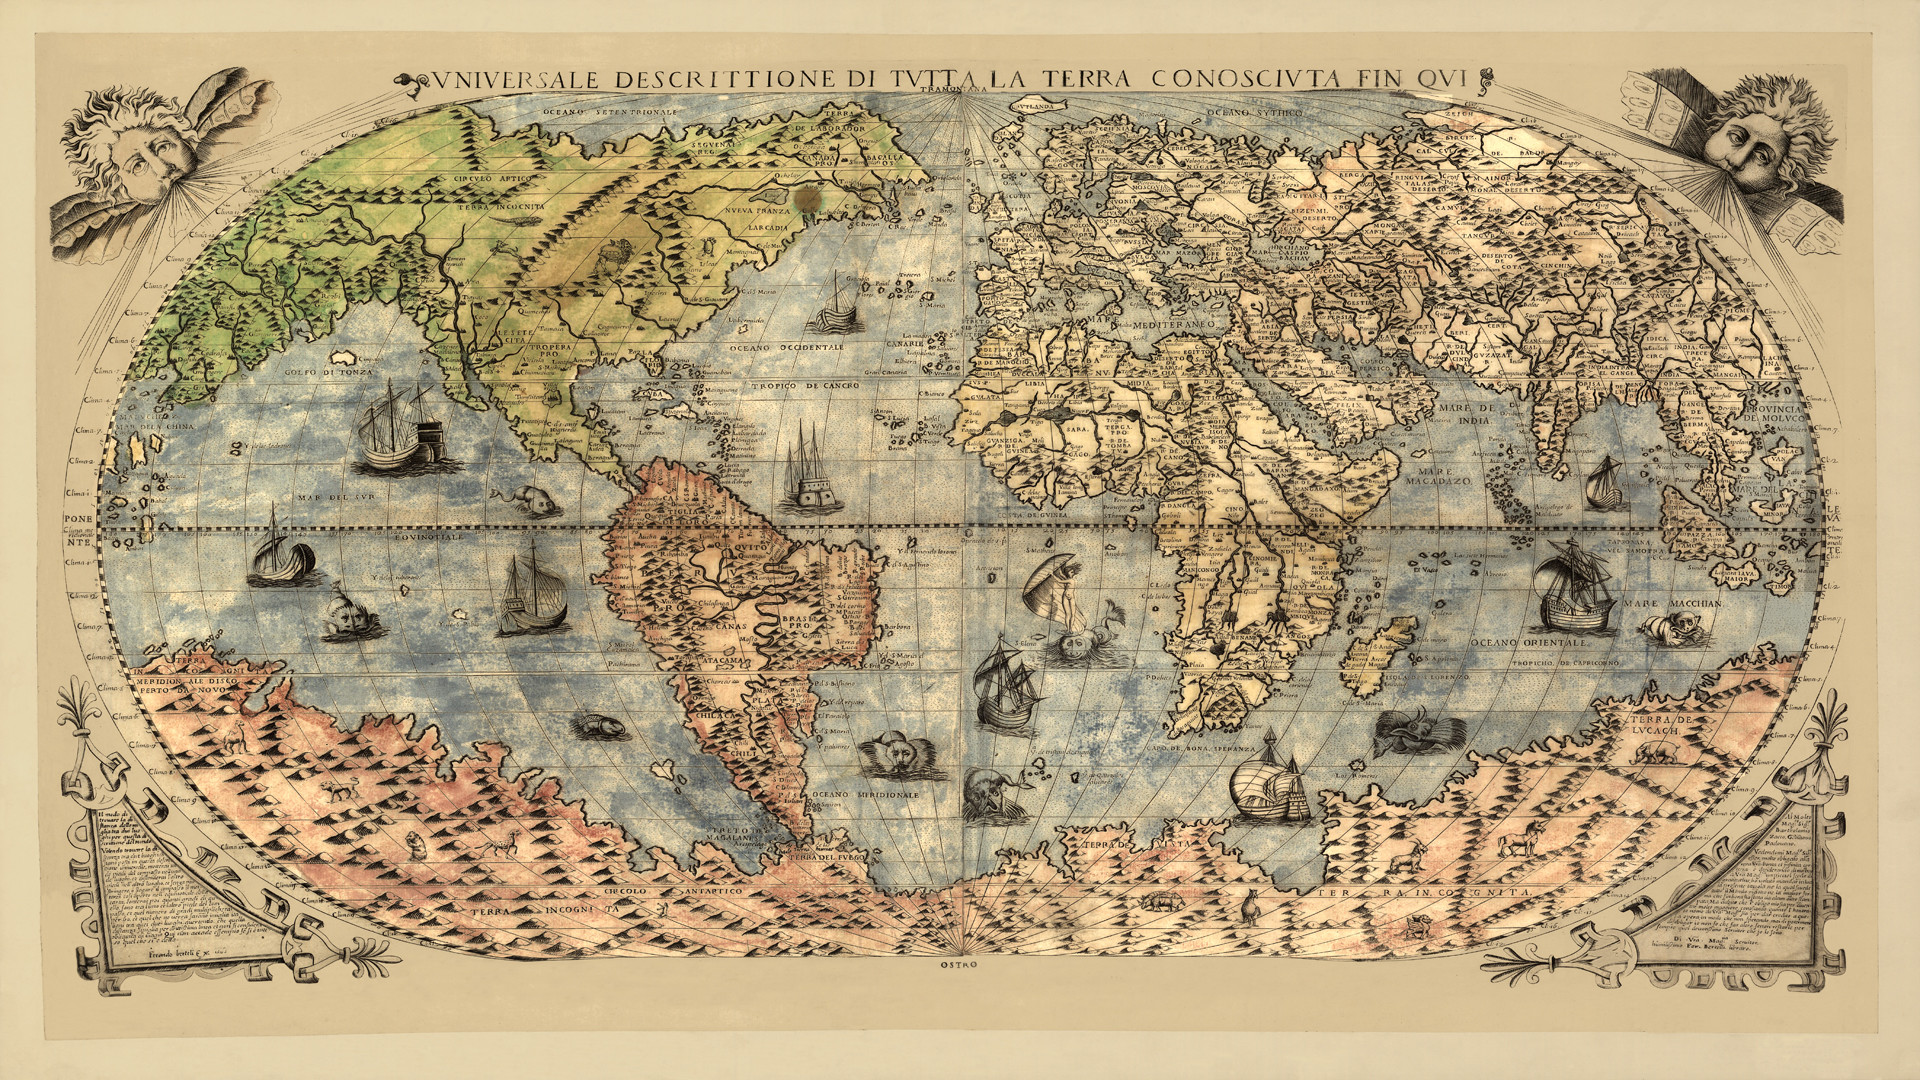 Vintage map wallpapers 60 background pictures 1920x1080 invigorating walls world map wallpaper border source vintage maps wallpapers on kubipet com style world map wallpaper labzada wallpaper world map freerunsca Gallery